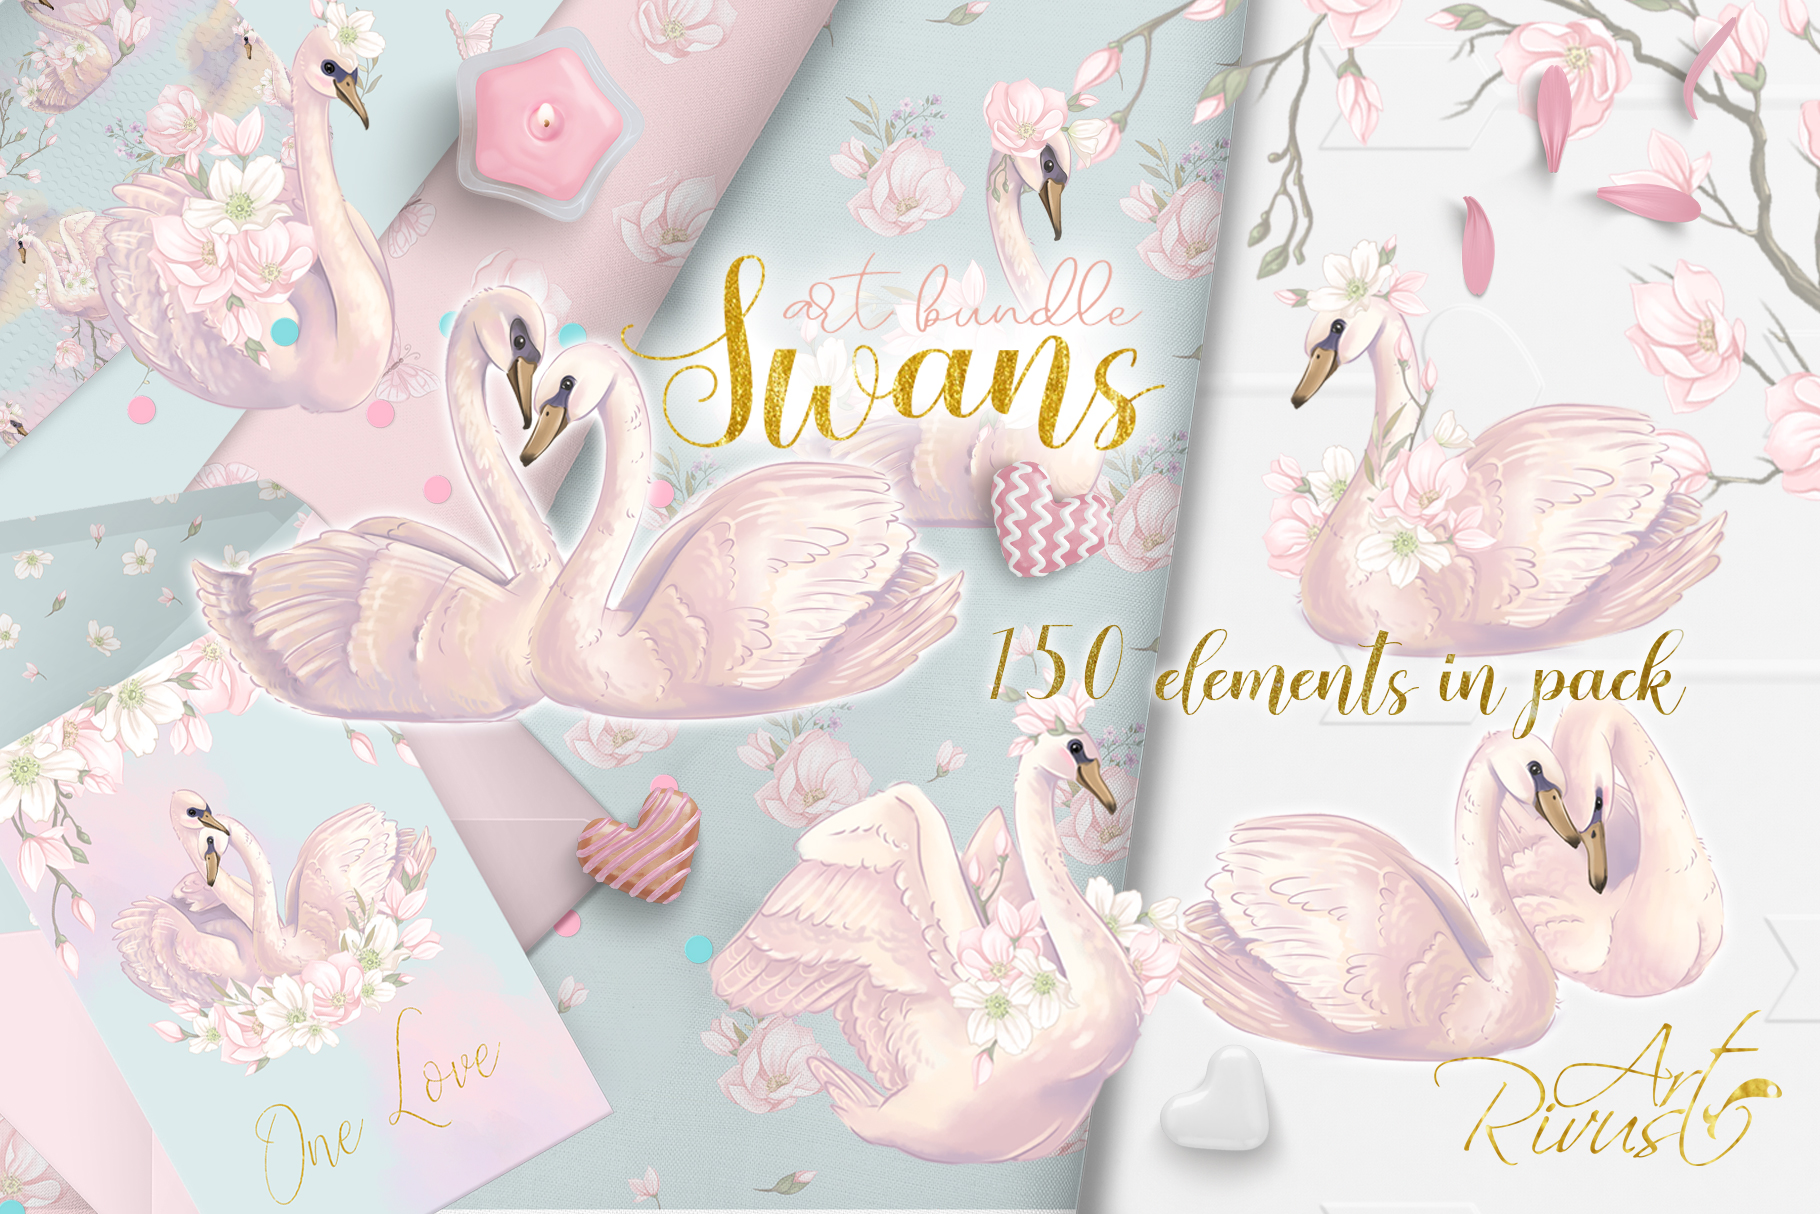 Swans clipart bundle. Wedding and baby shower graphic pack. example image 1